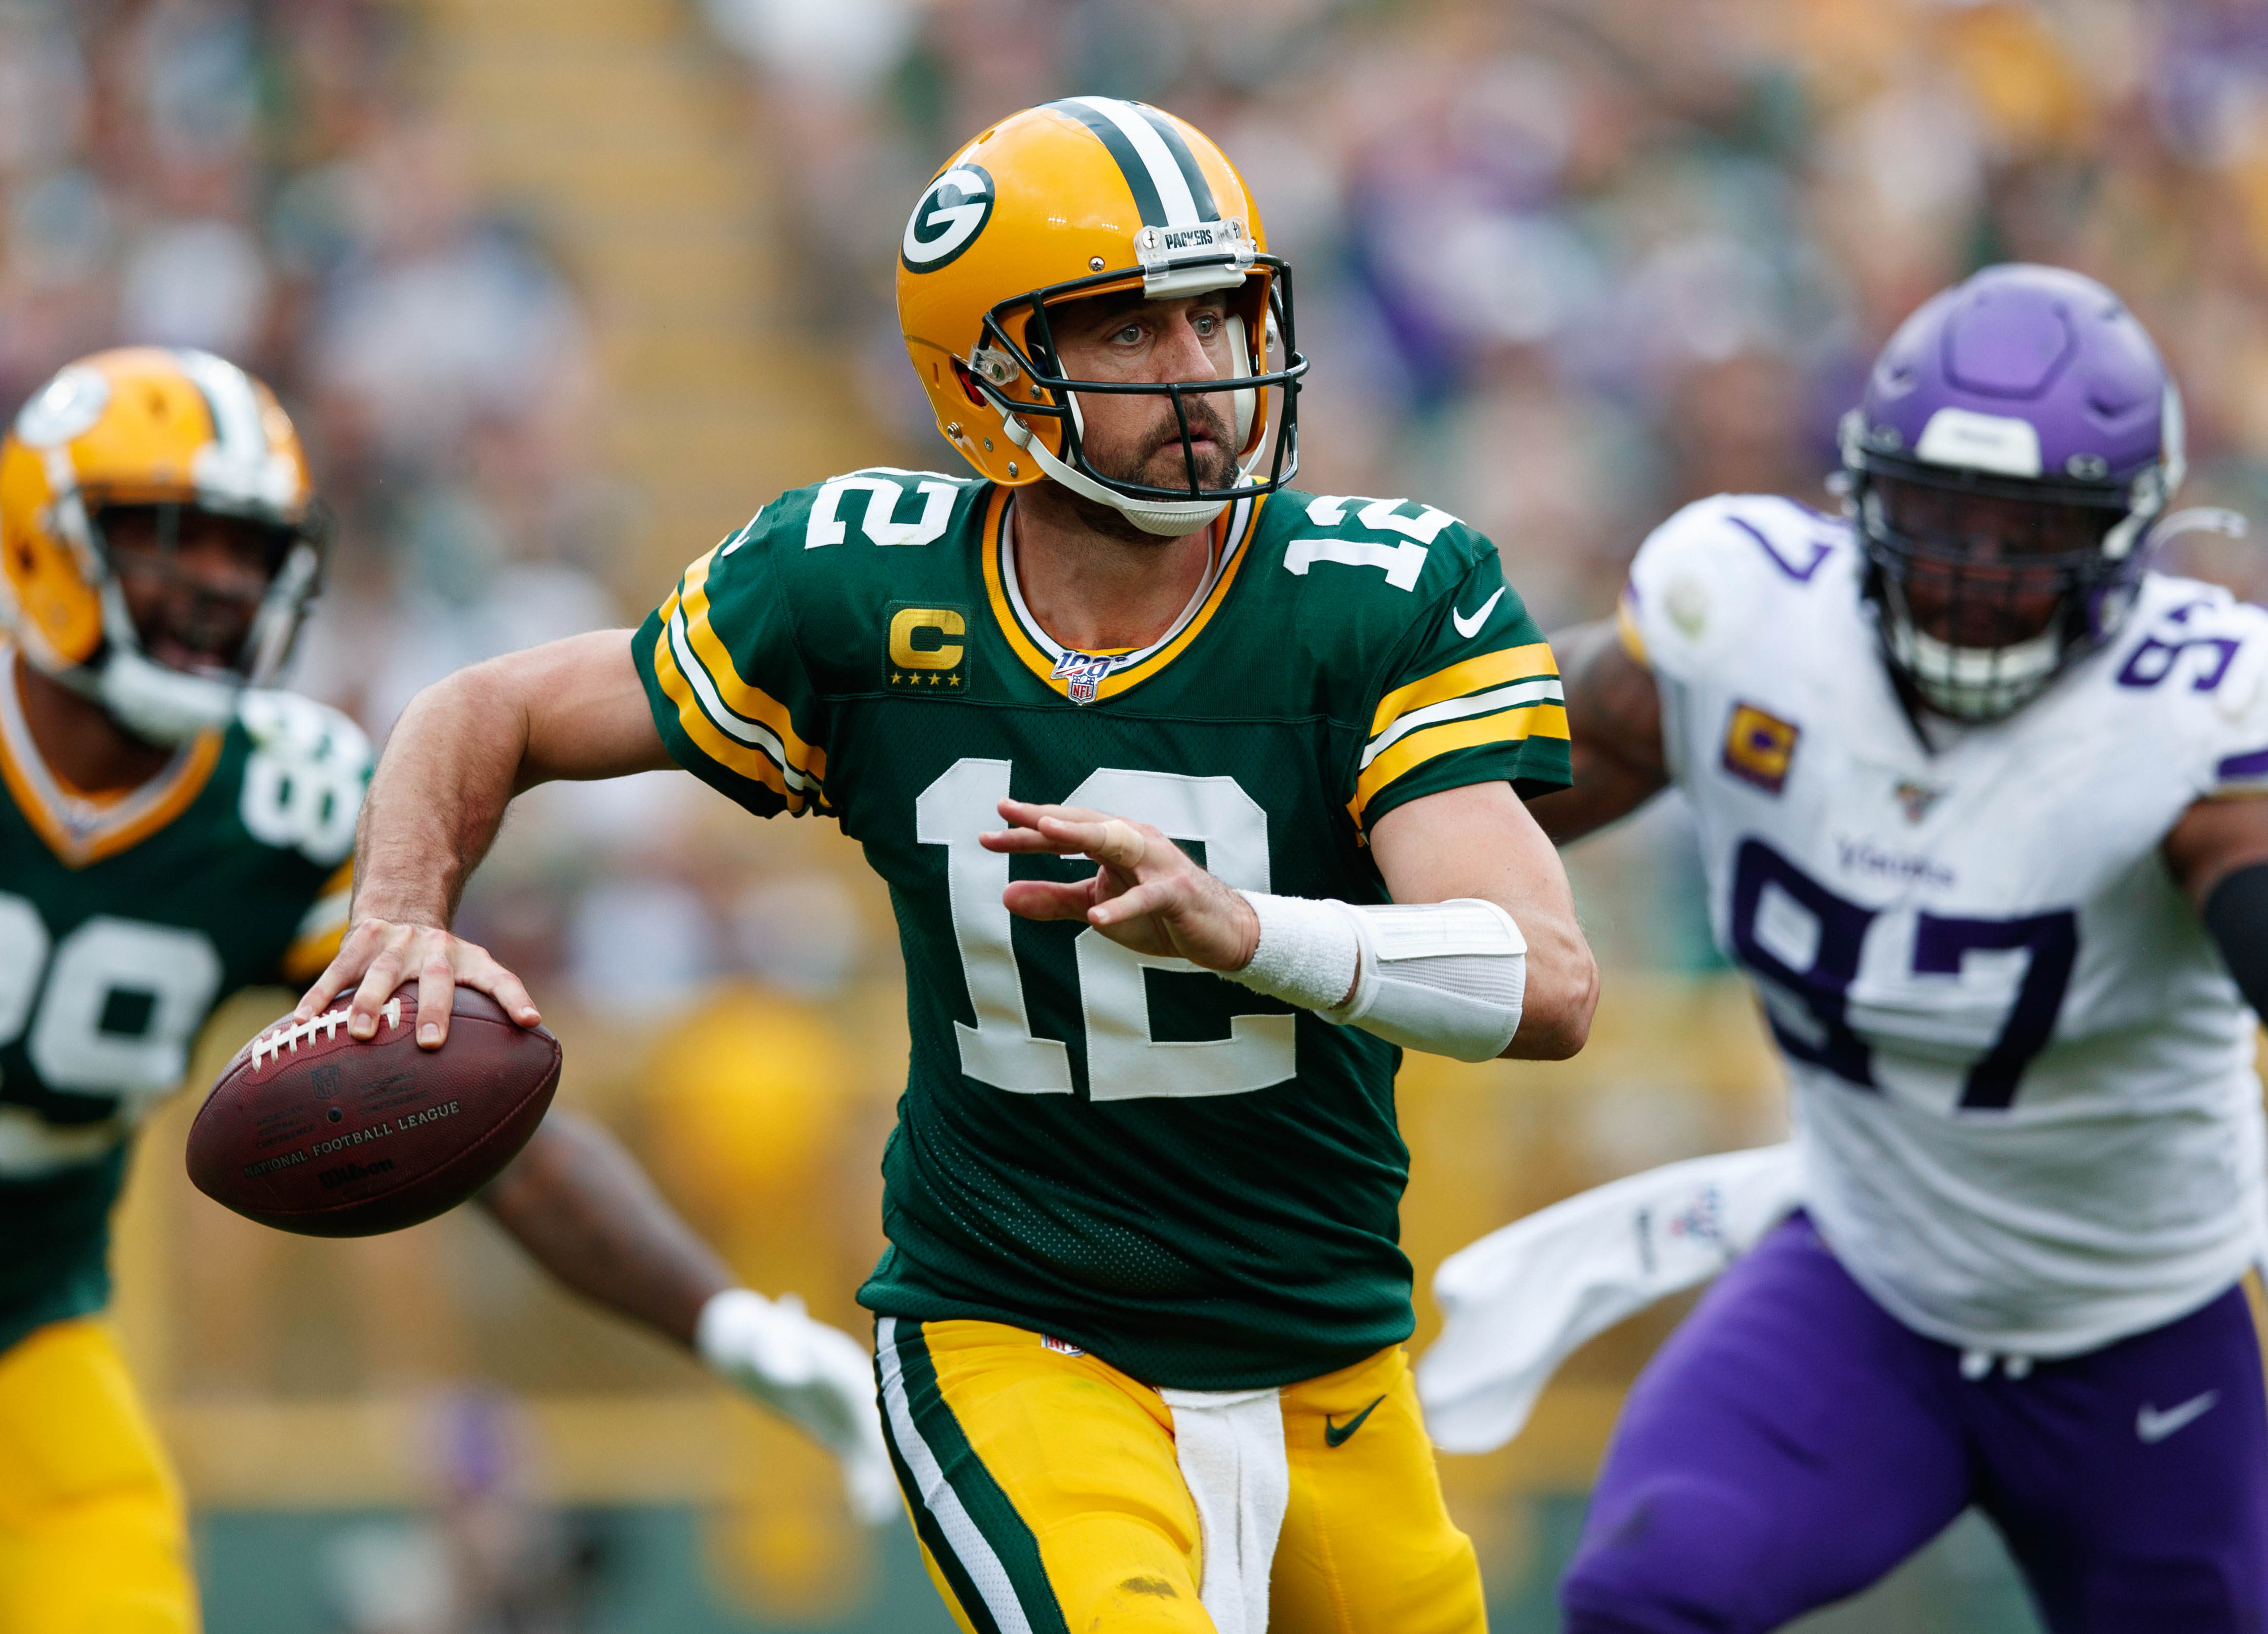 Six Key Factors That Will Determine the Winner of the Packers-Vikings Rematch